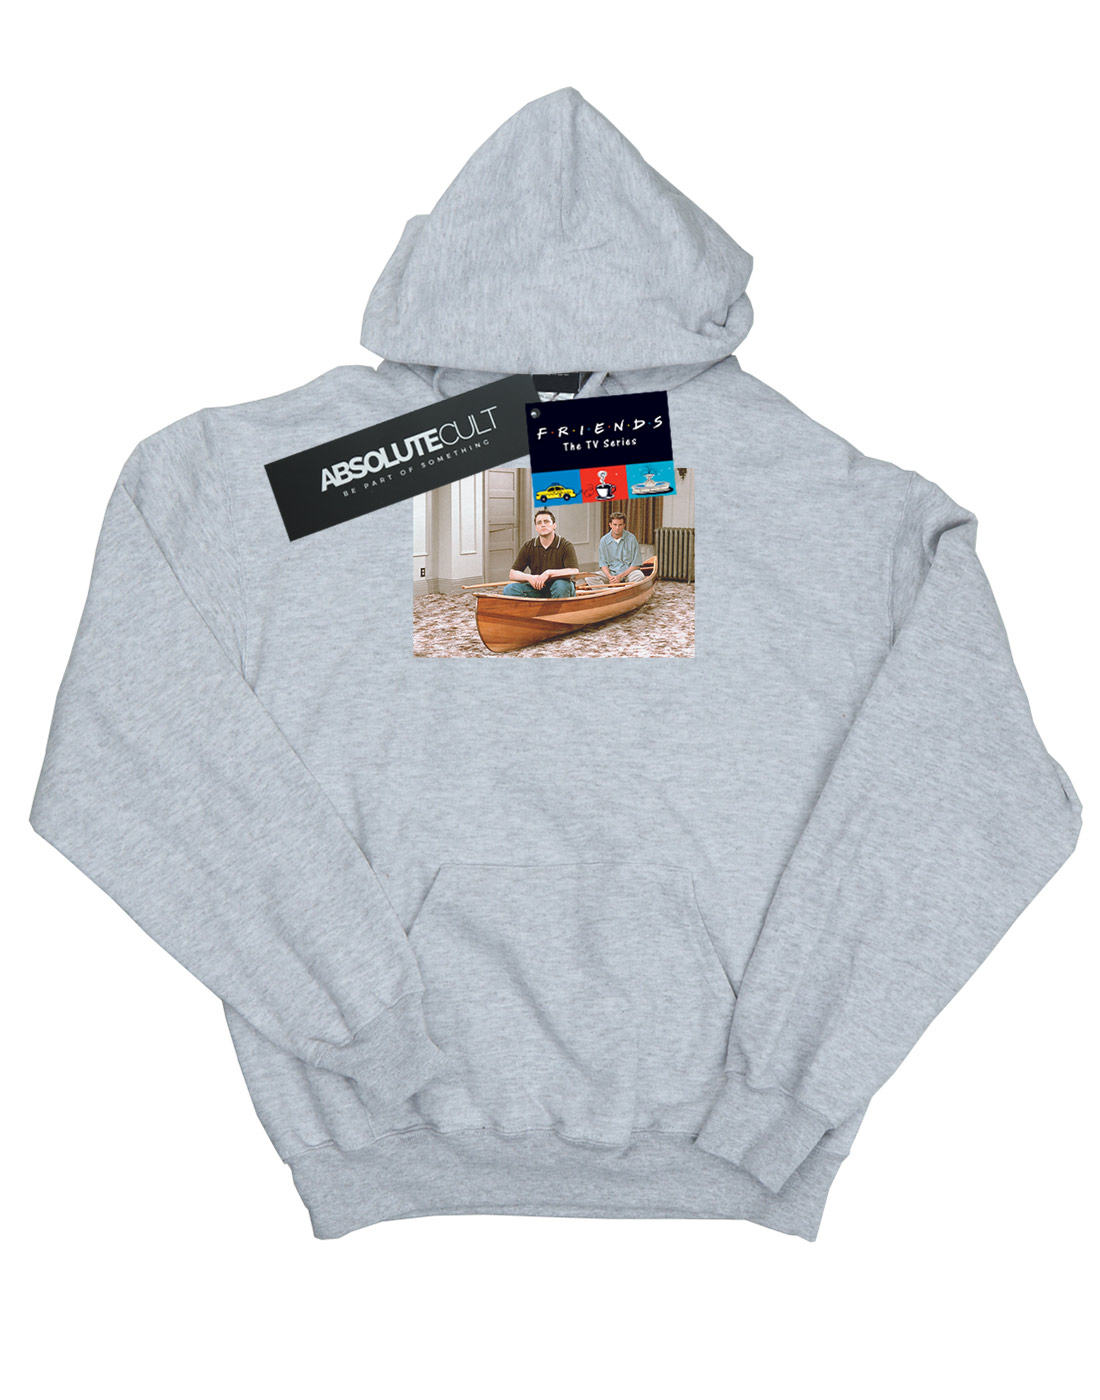 Absolute Cult Friends Girls Boat Photo Hoodie